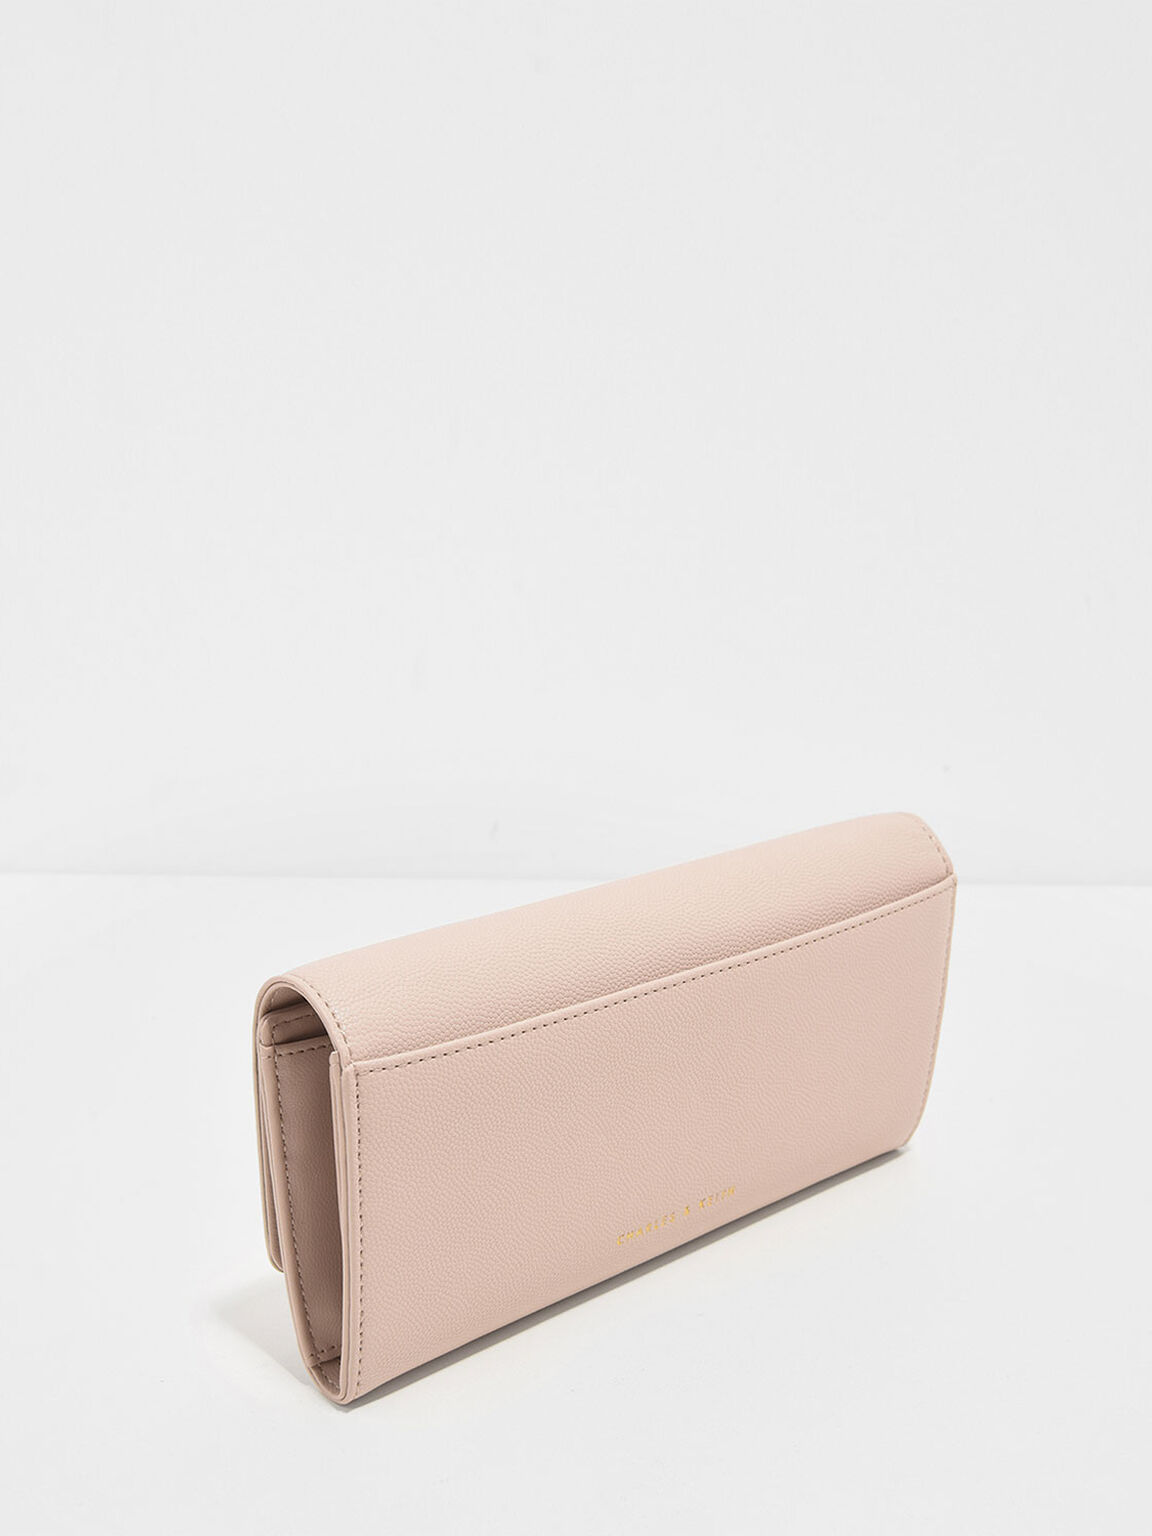 Metal Bow Wallet, Nude, hi-res